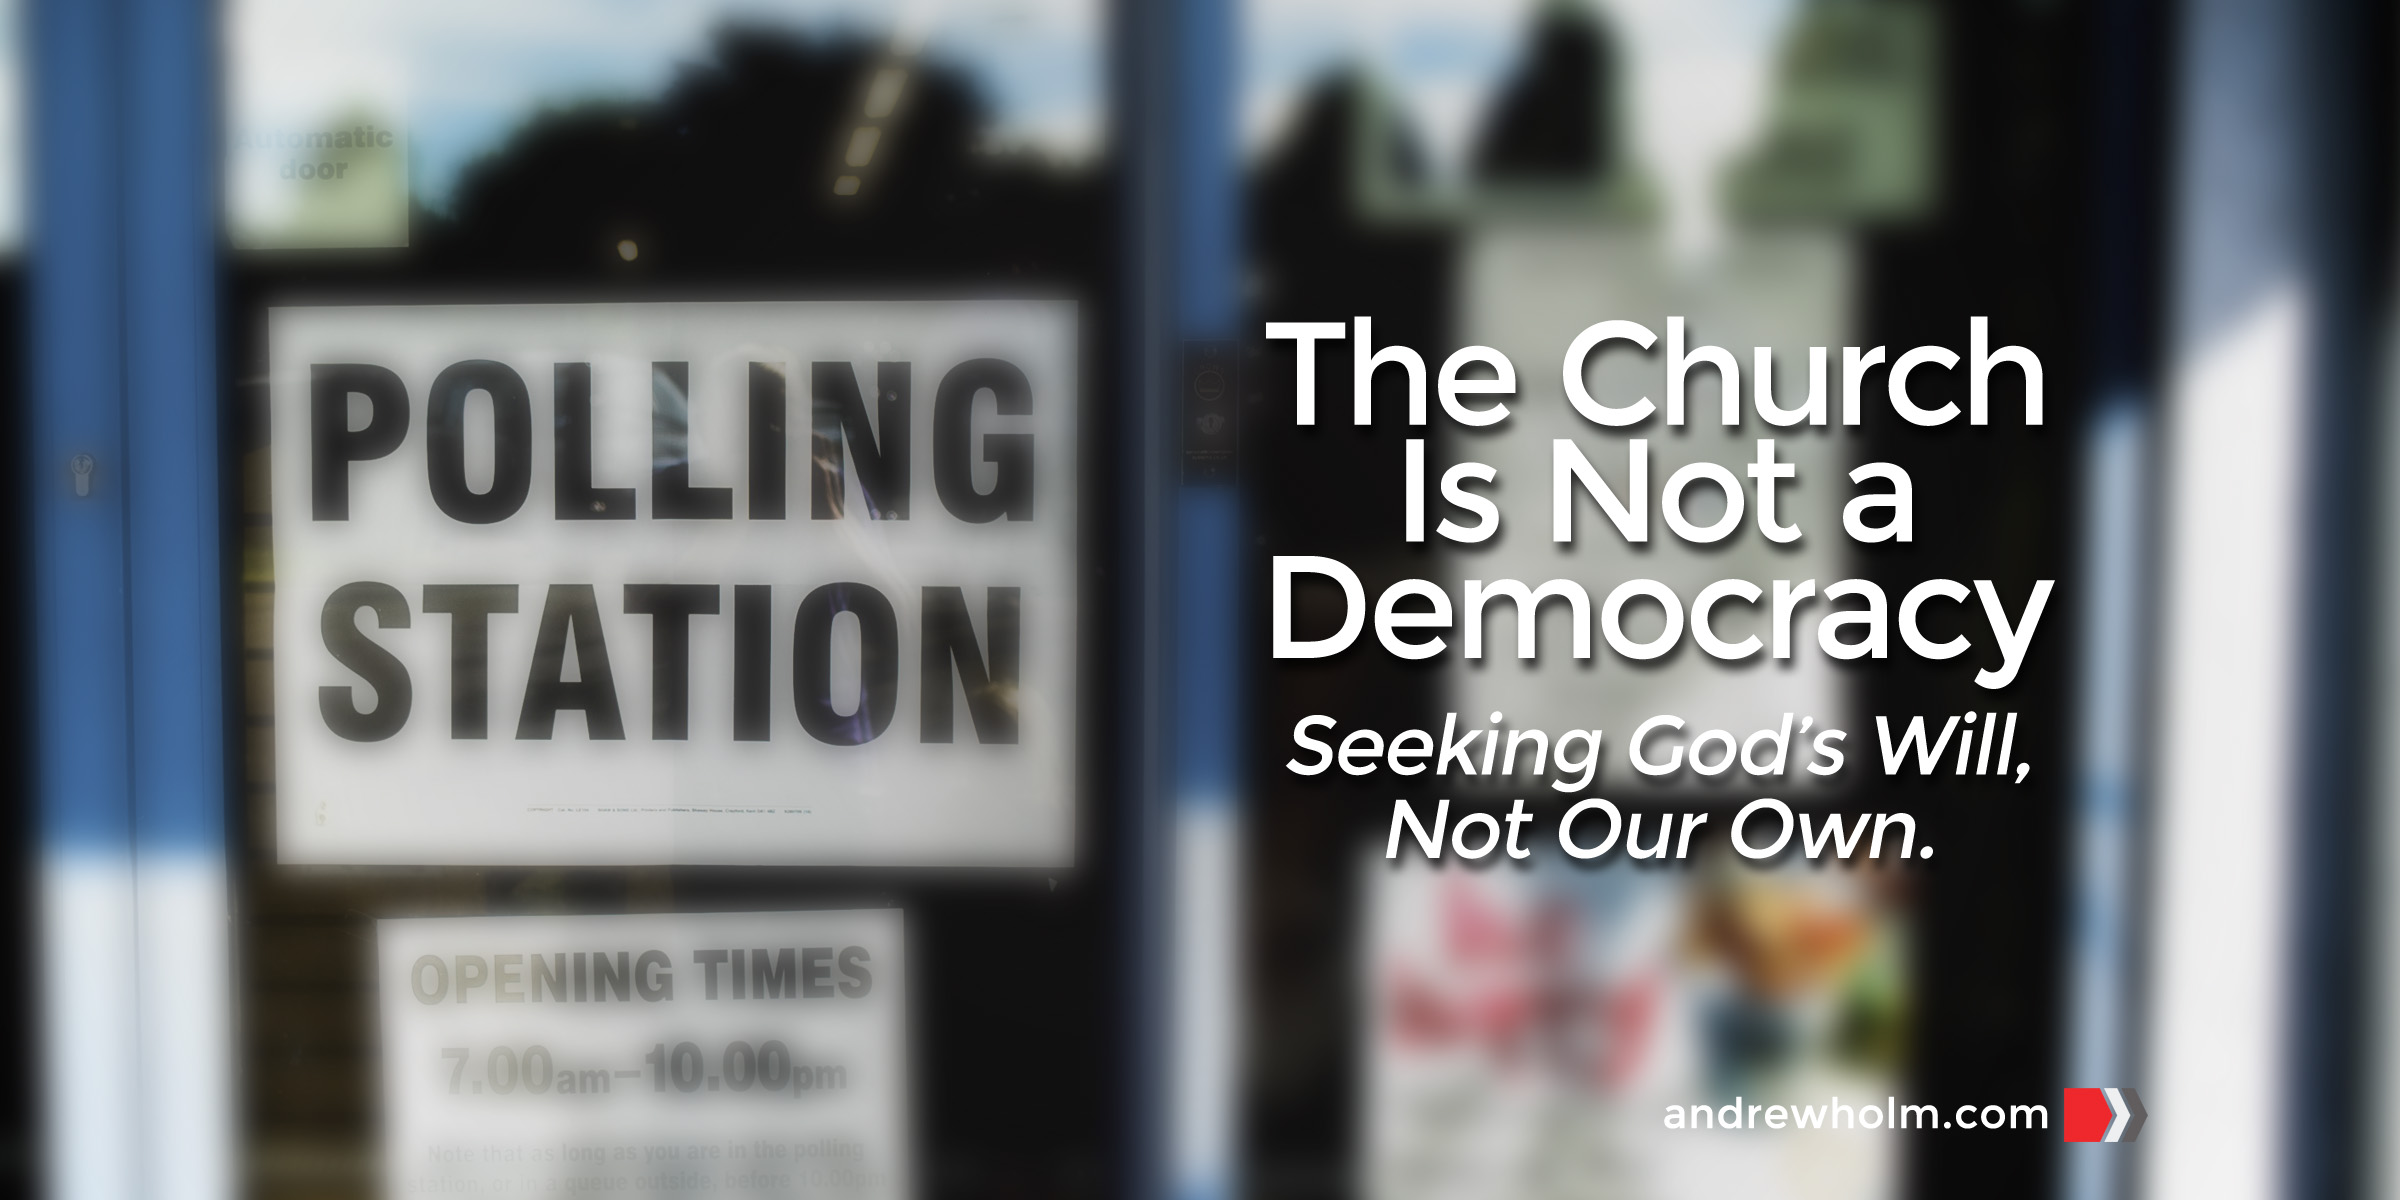 The Church Is Not a Democracy